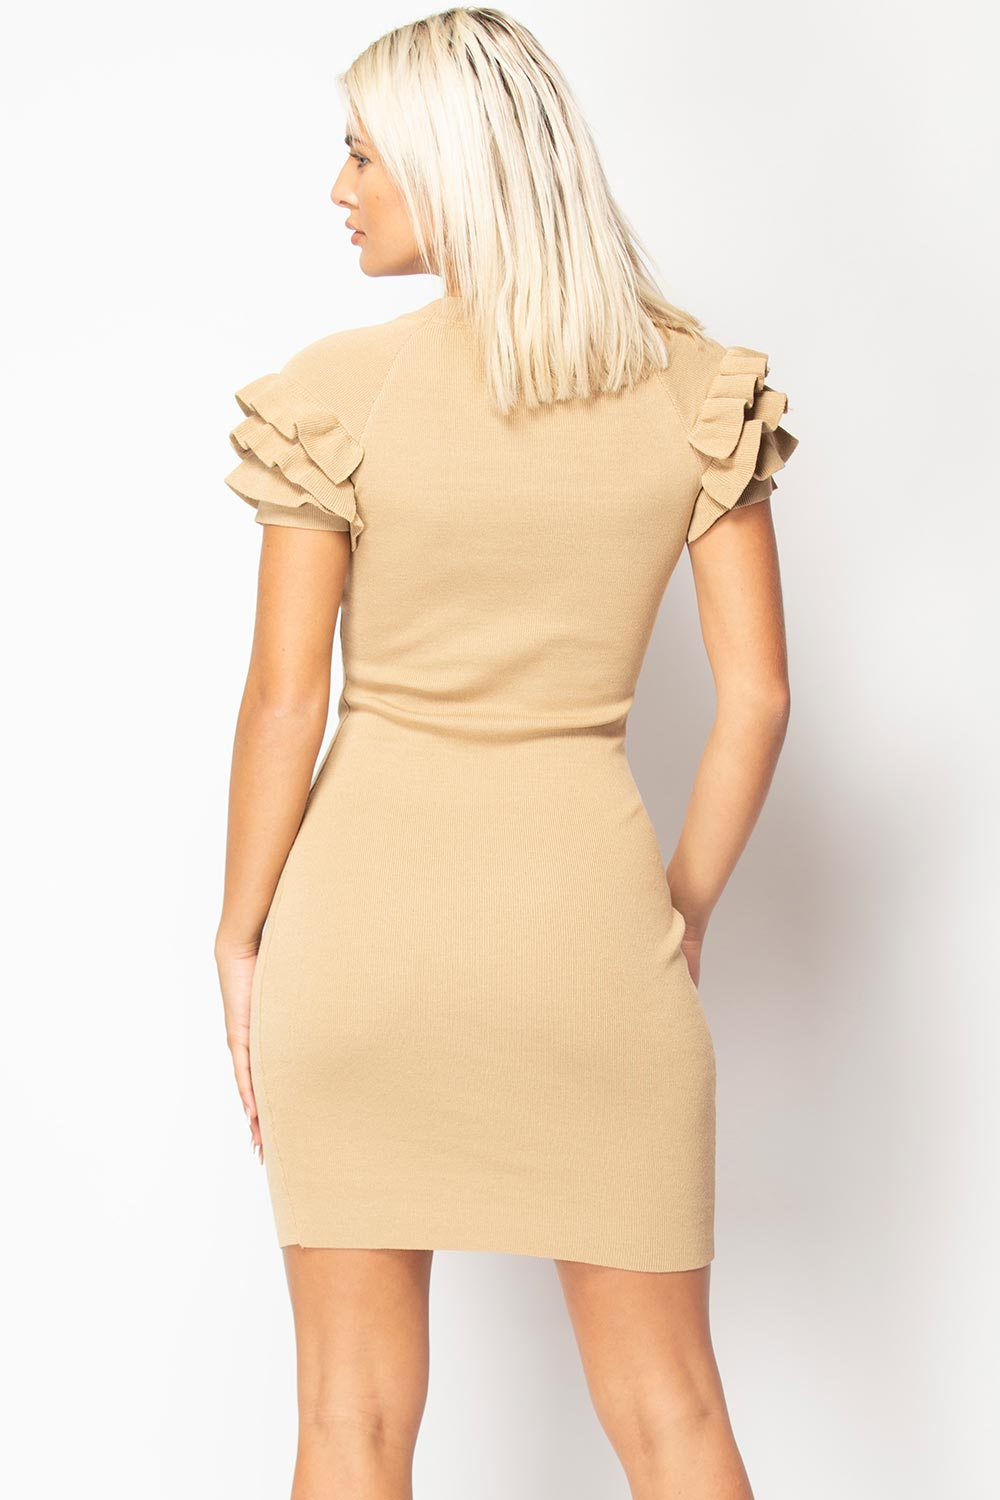 balmain inspired gold button detail dress